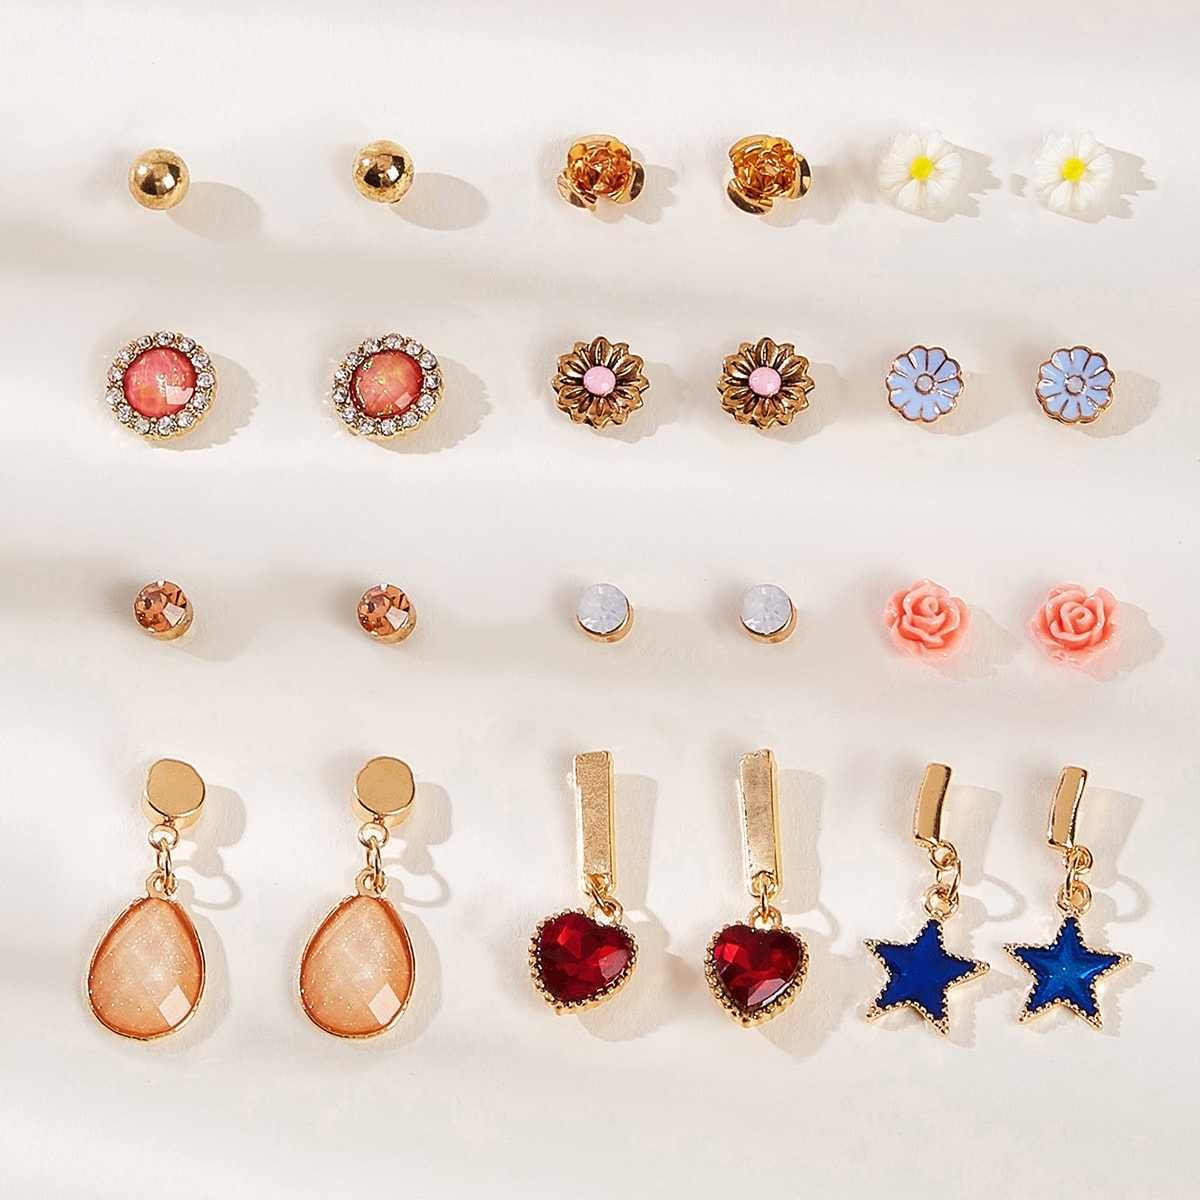 Star & Heart Design Earrings 12pairs in Multicolor by ROMWE on GOOFASH